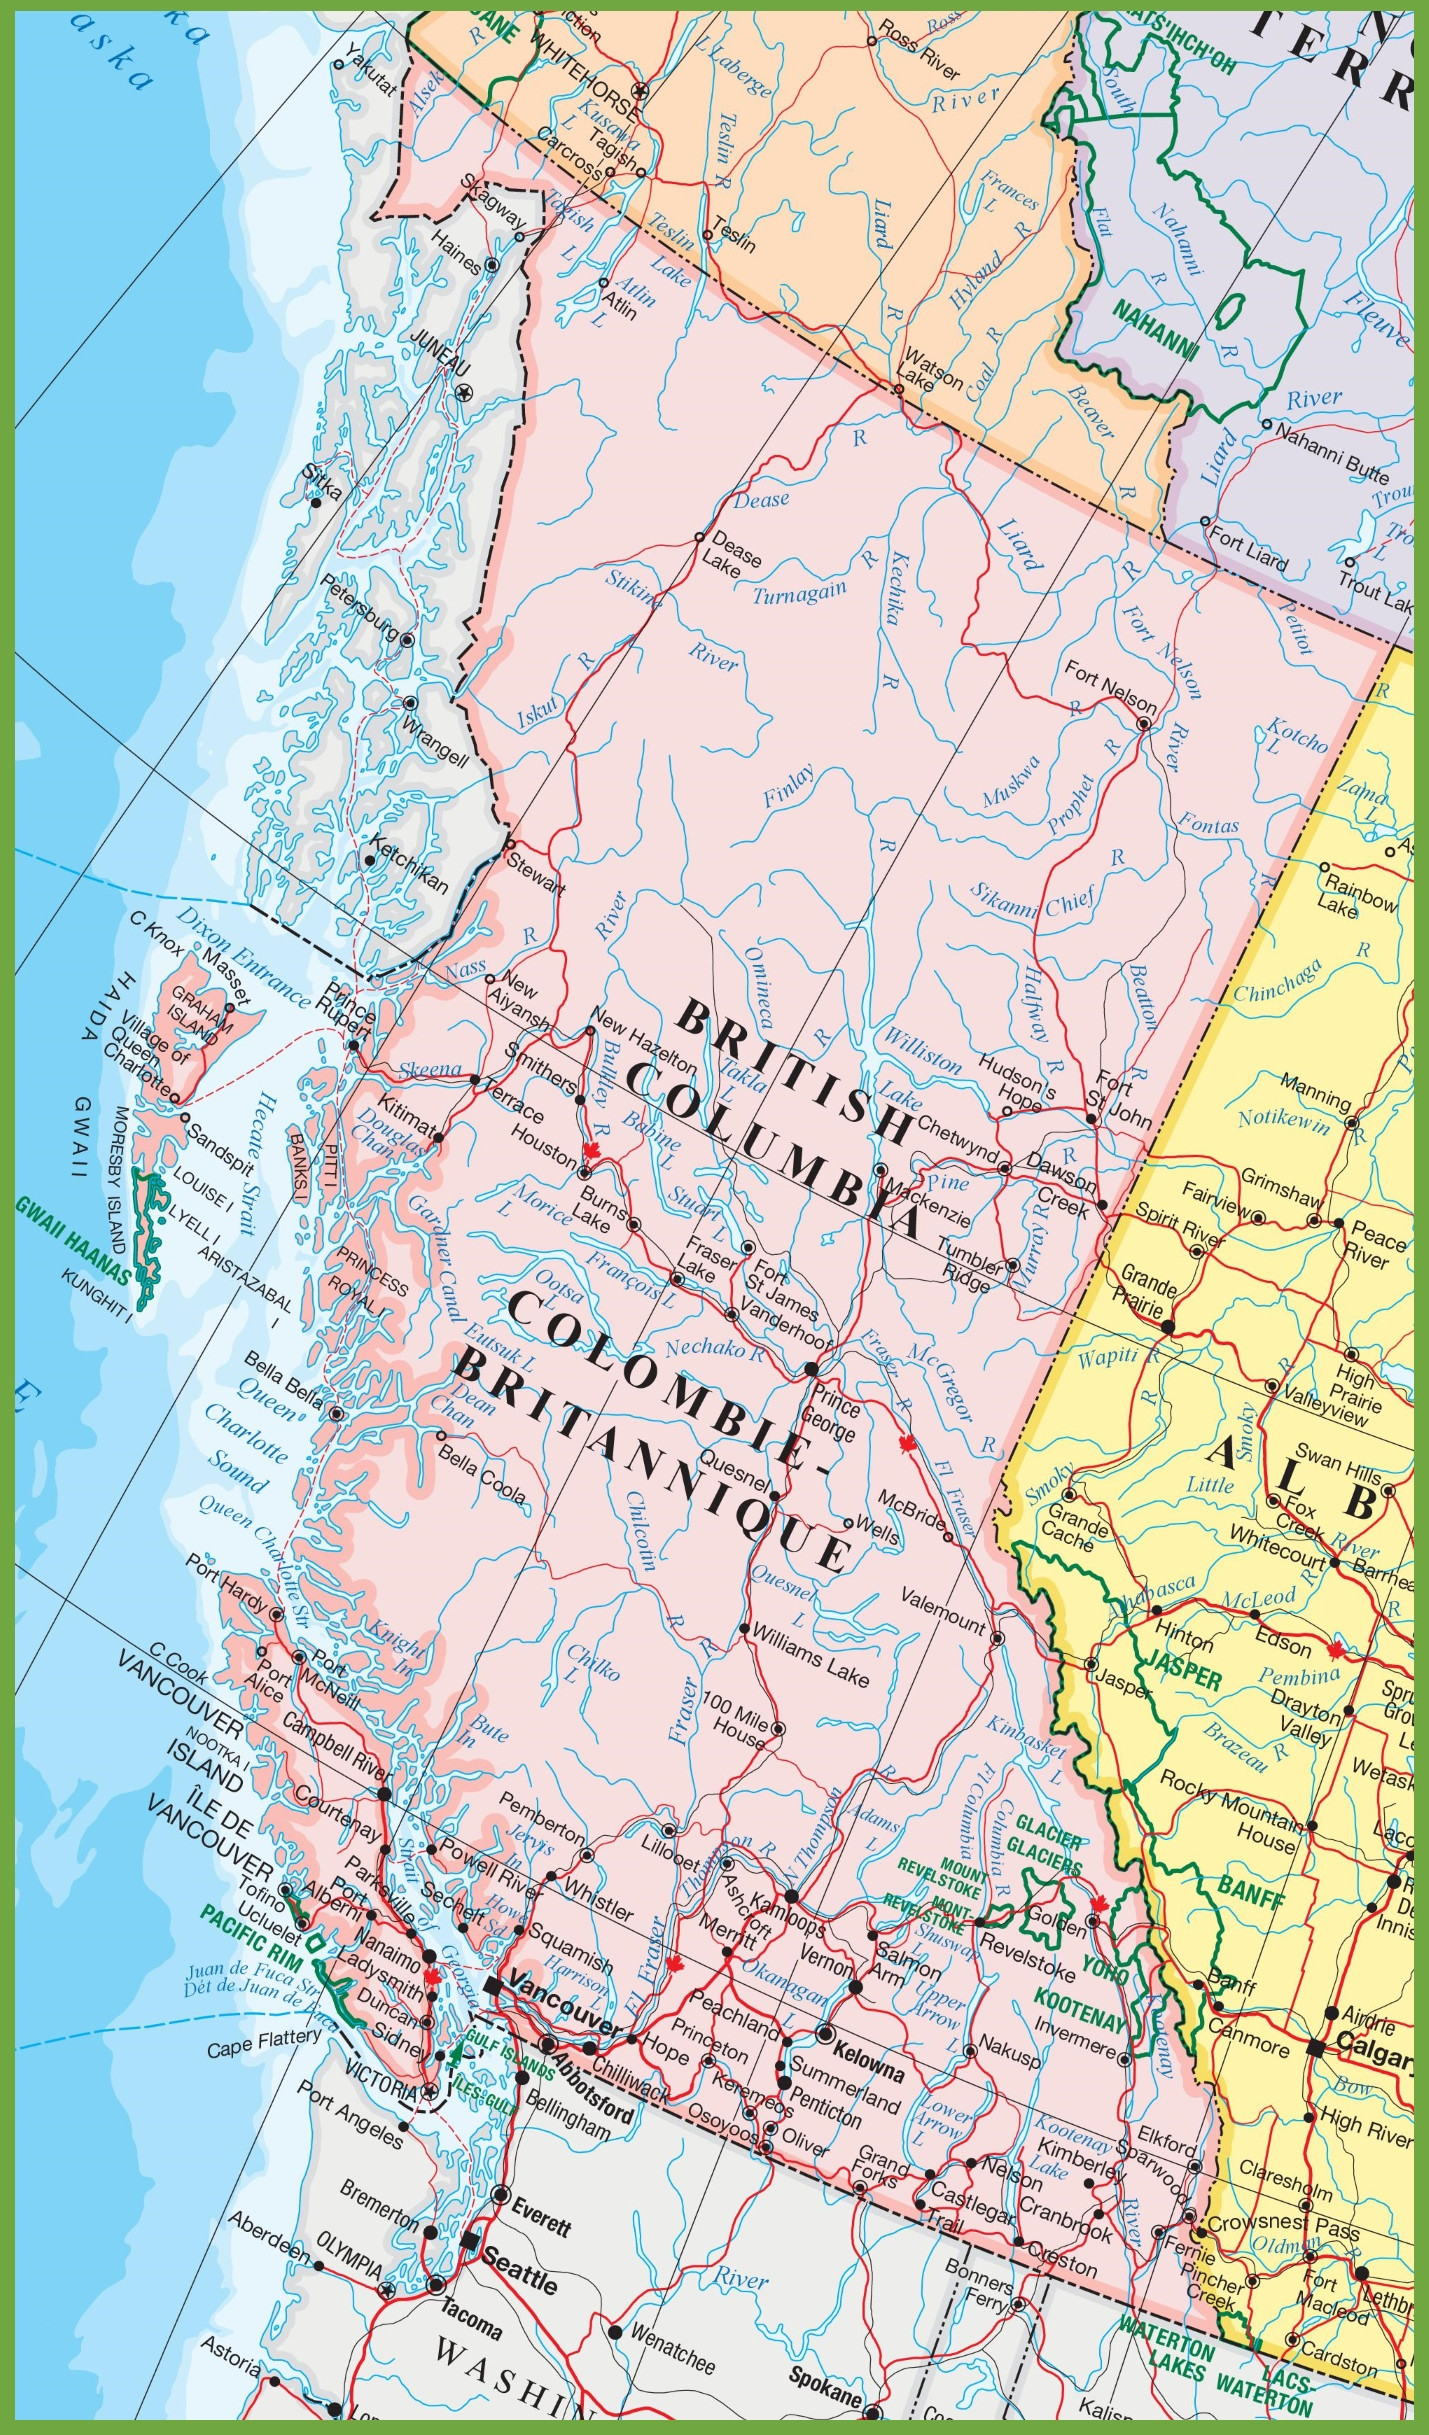 detailed map of British Columbia with cities and towns ï ¿